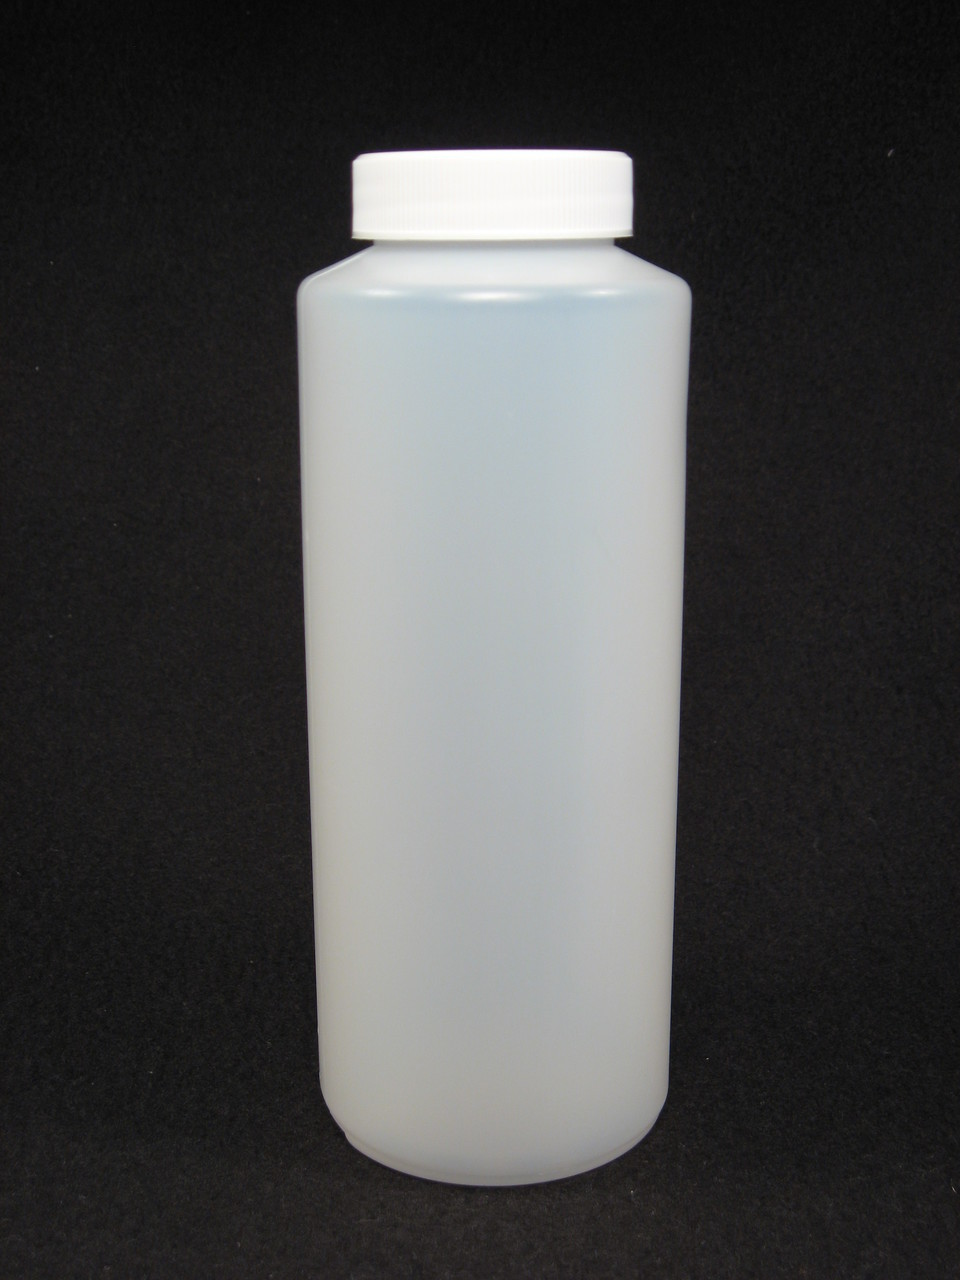 16 oz. Cylinder honey bottles - case of 300 with white screw top lids